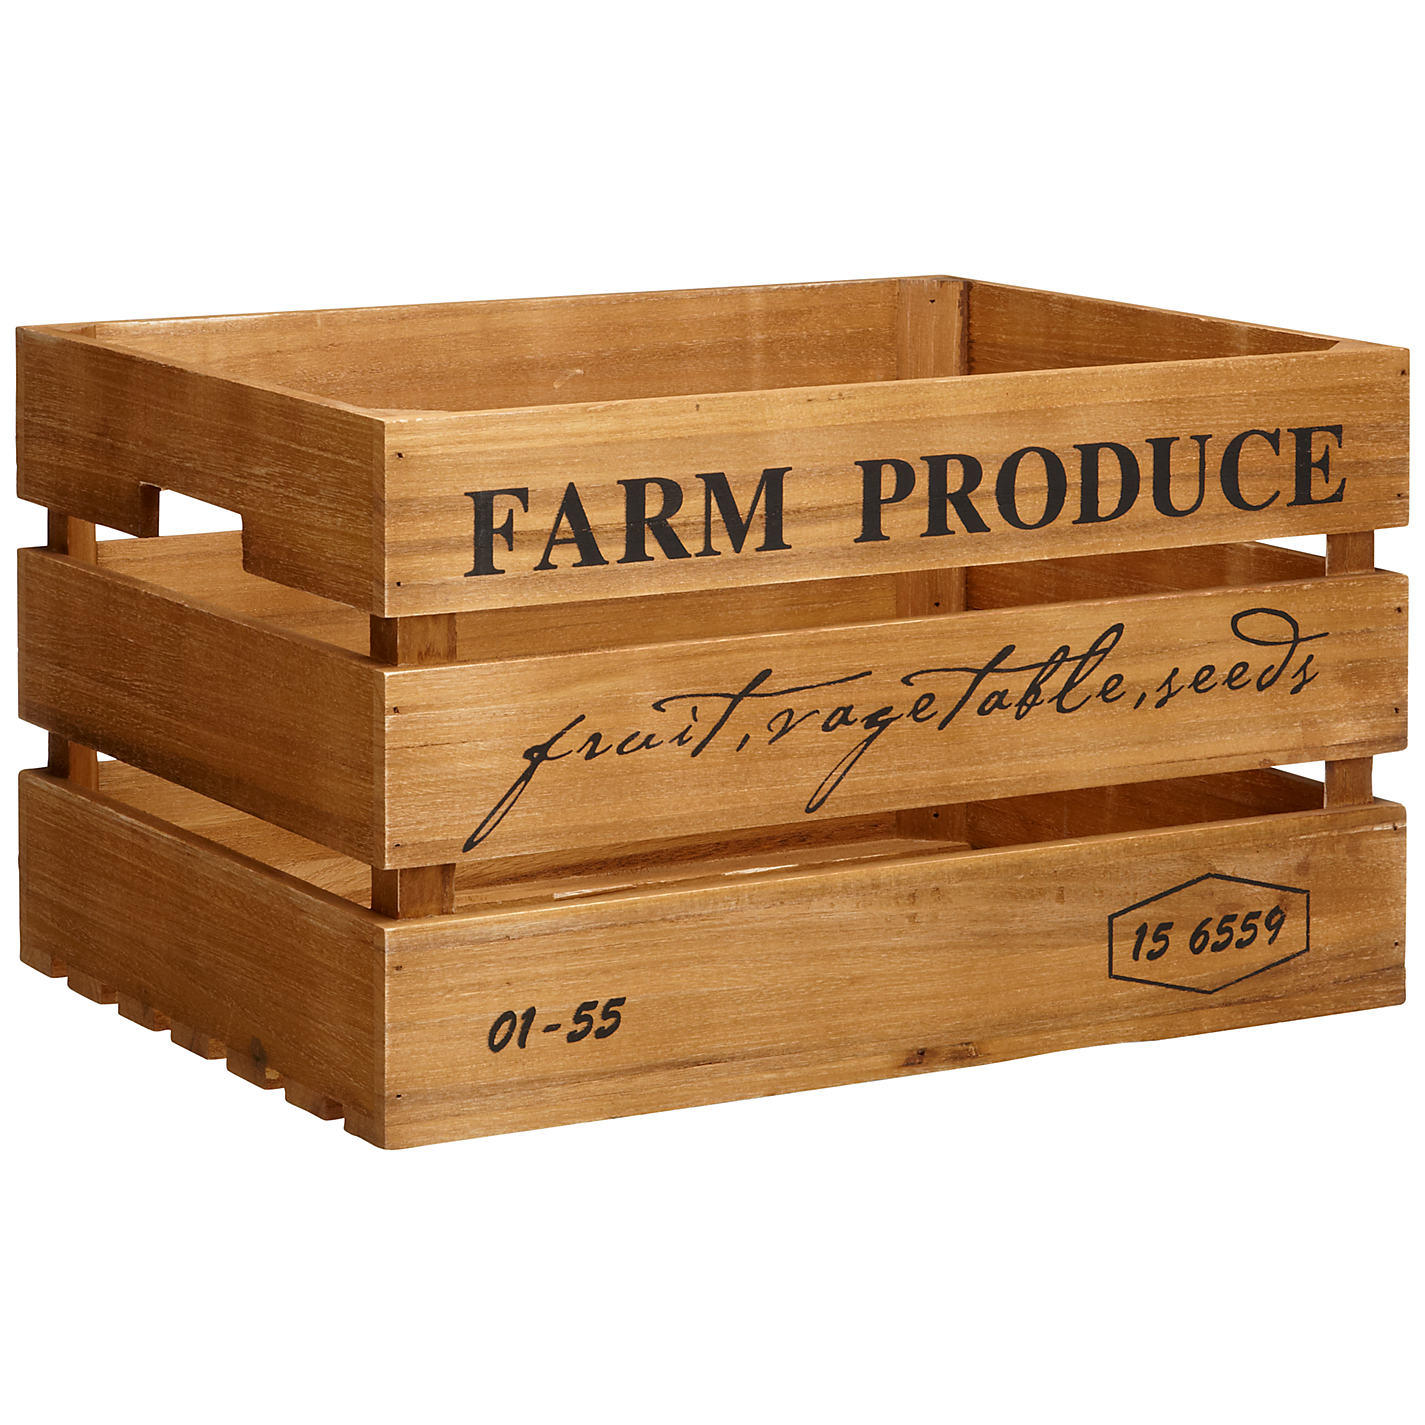 China Wooden Crate, Wood Crate, with Pine, Paulownia ...